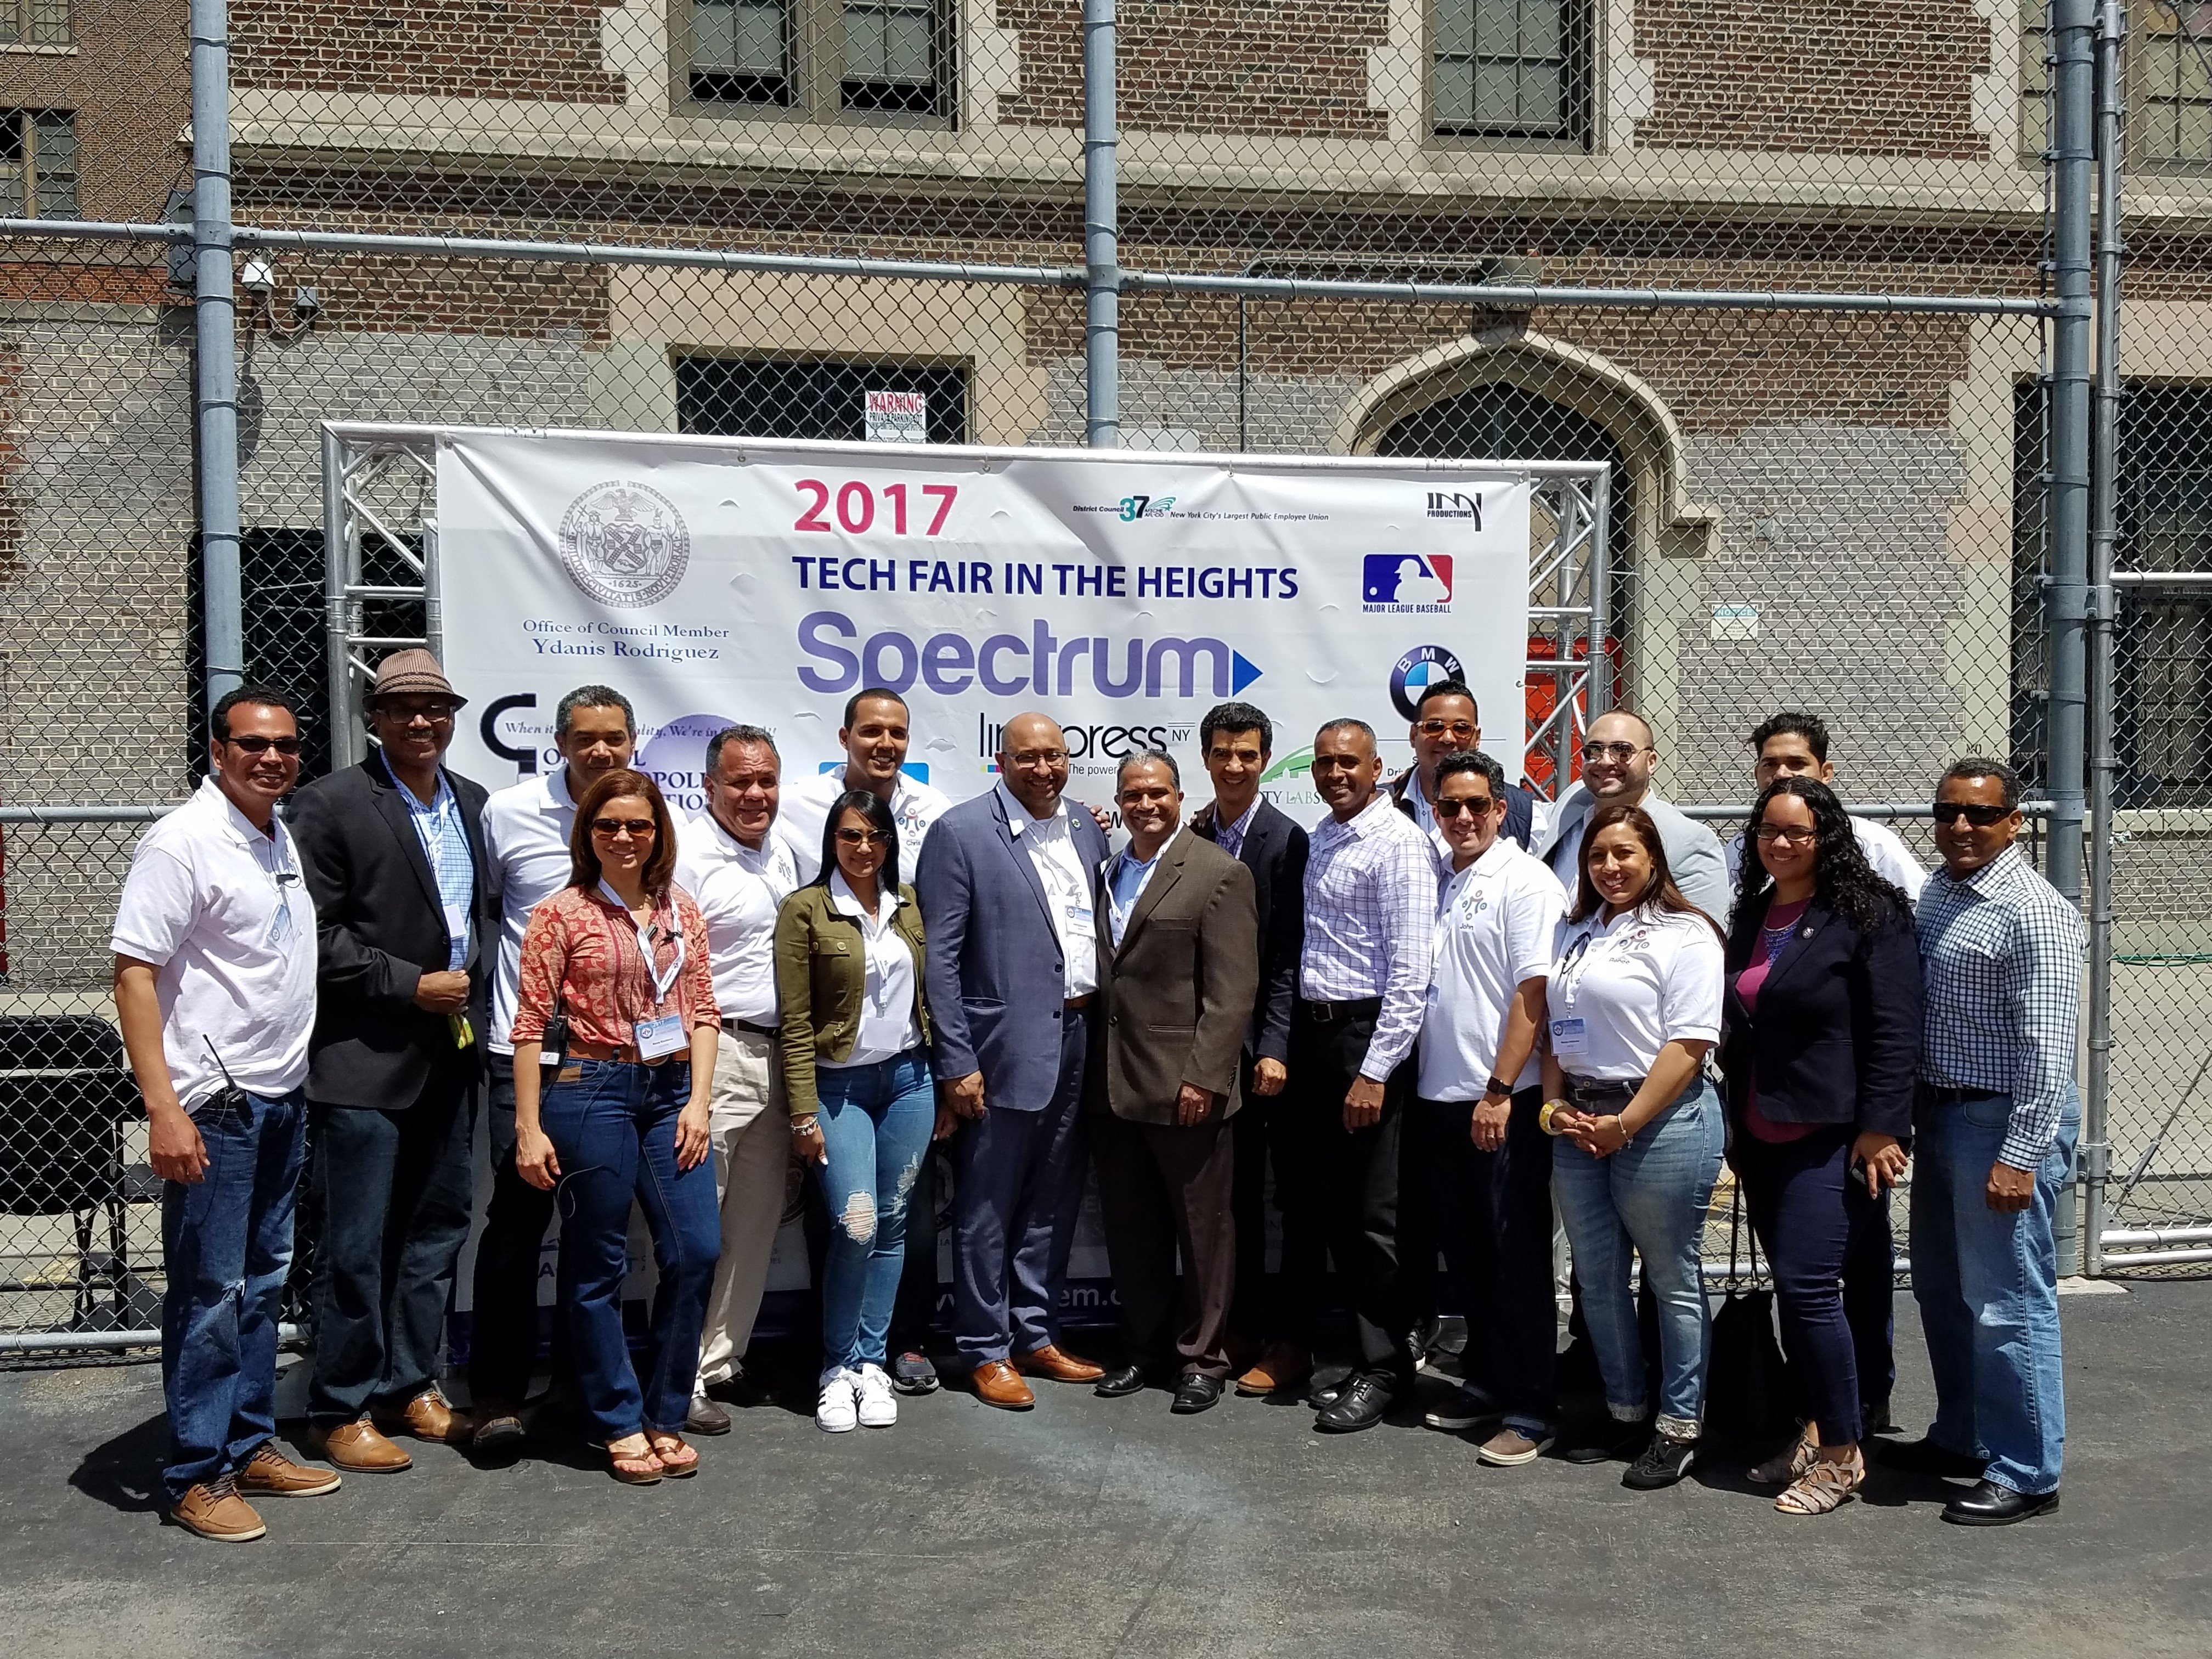 DDC Commissioner Feniosky Peña pictured with community leaders